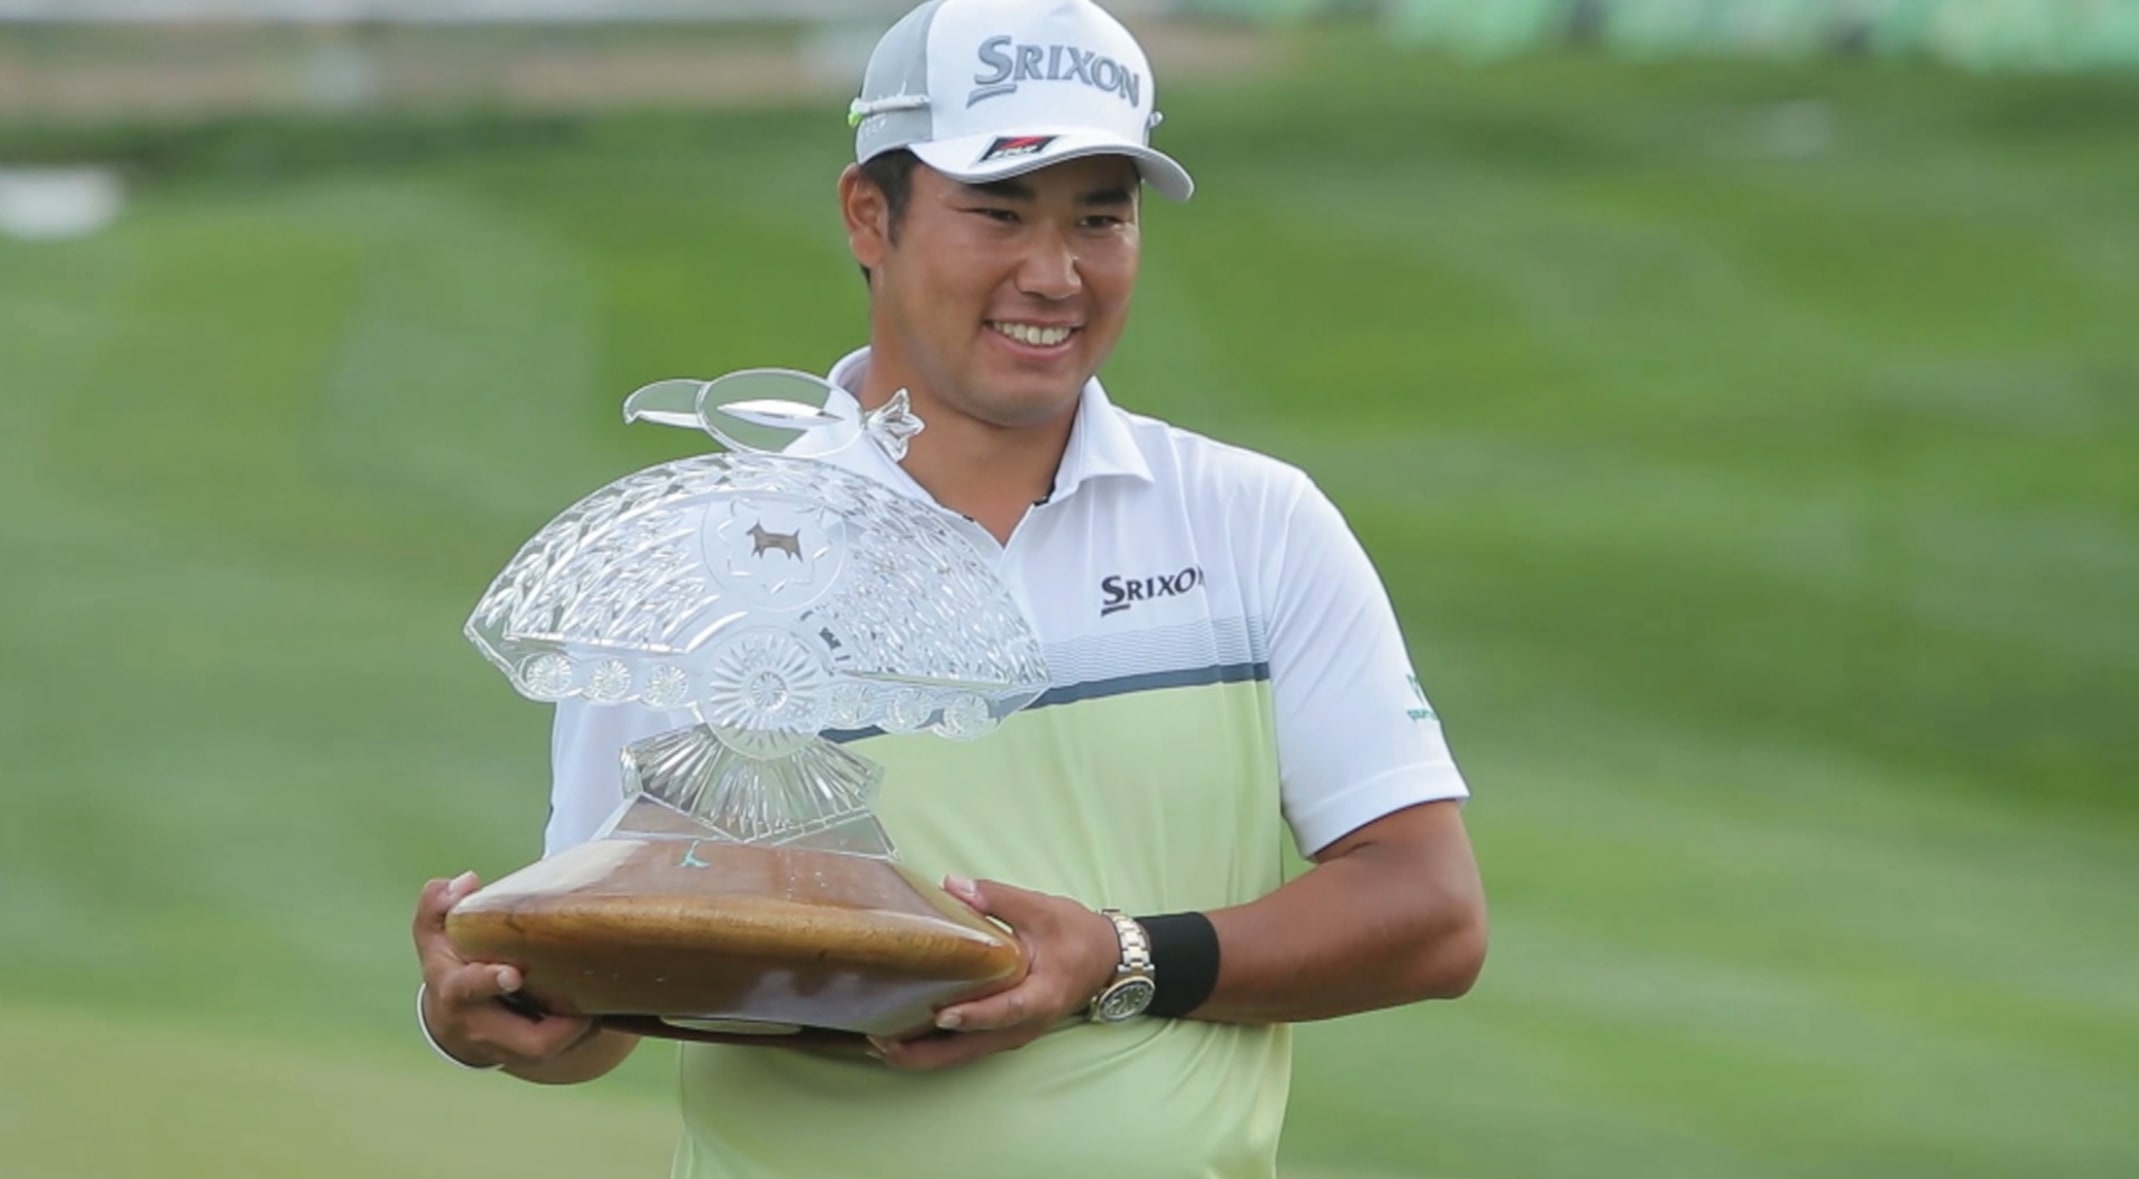 Threepeat: One of the TOUR's toughest asks